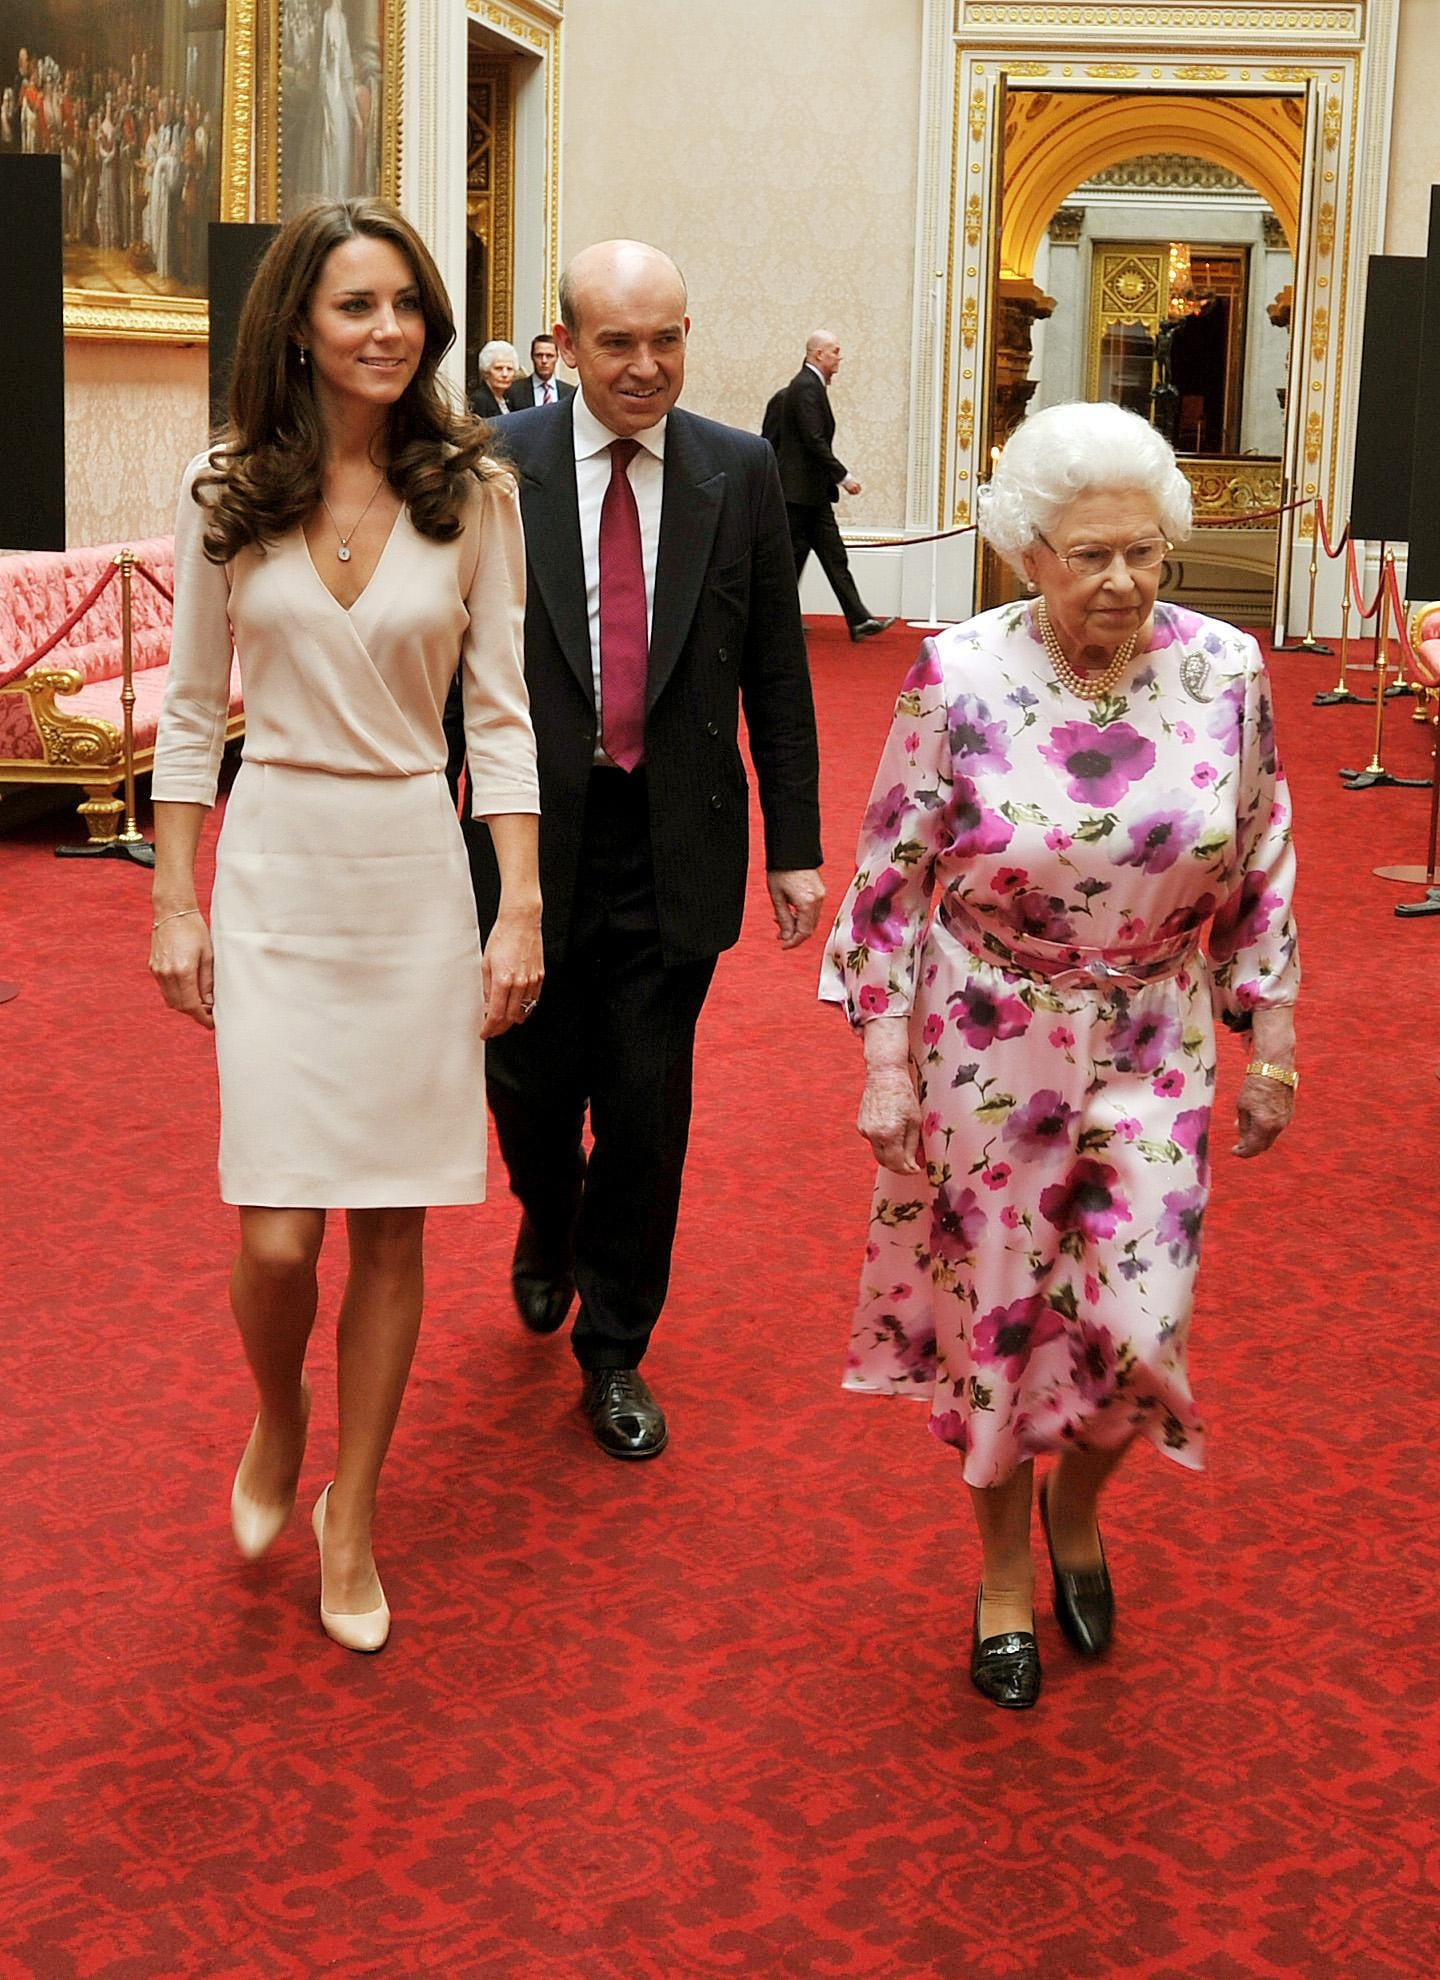 Kate Middleton and Queen Elizabeth walking in Buckingham Palace.